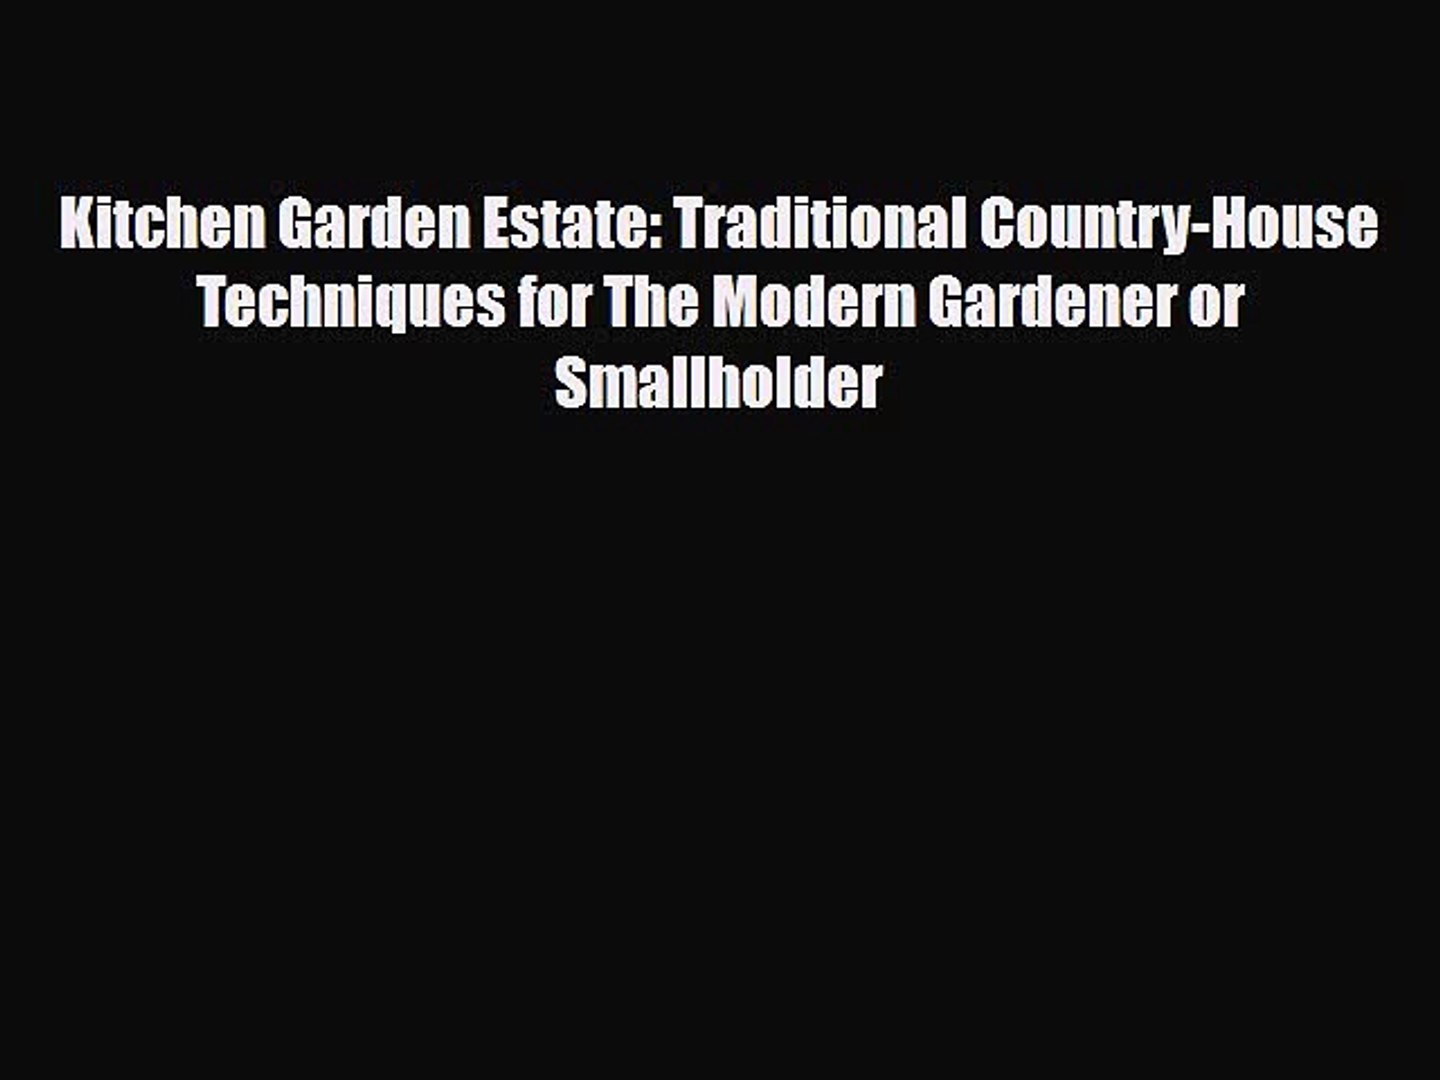 [PDF] Kitchen Garden Estate: Traditional Country-House Techniques for The Modern Gardener or